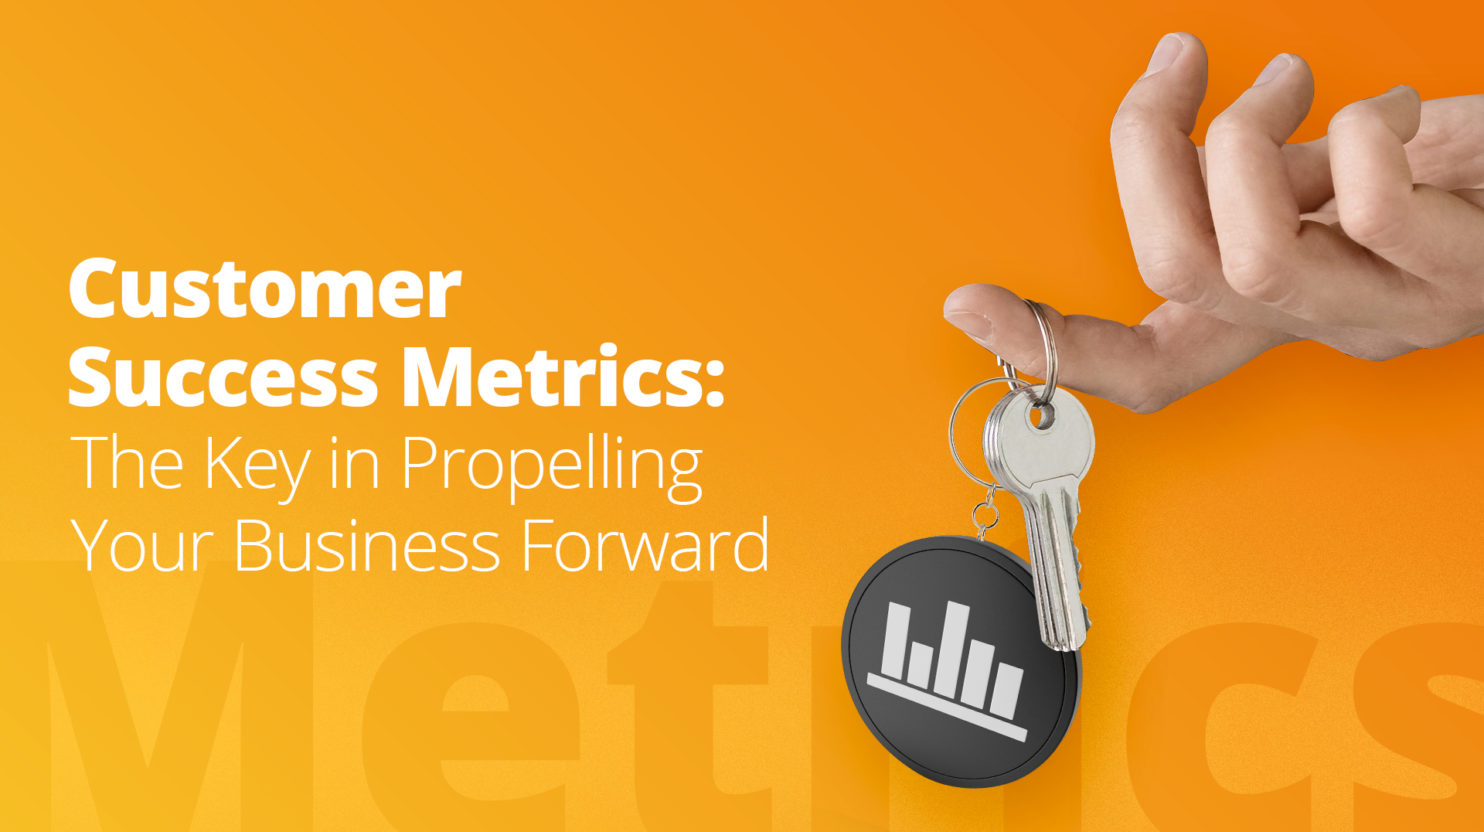 Customer Success Metrics: The Key in Propelling Your Business Forward